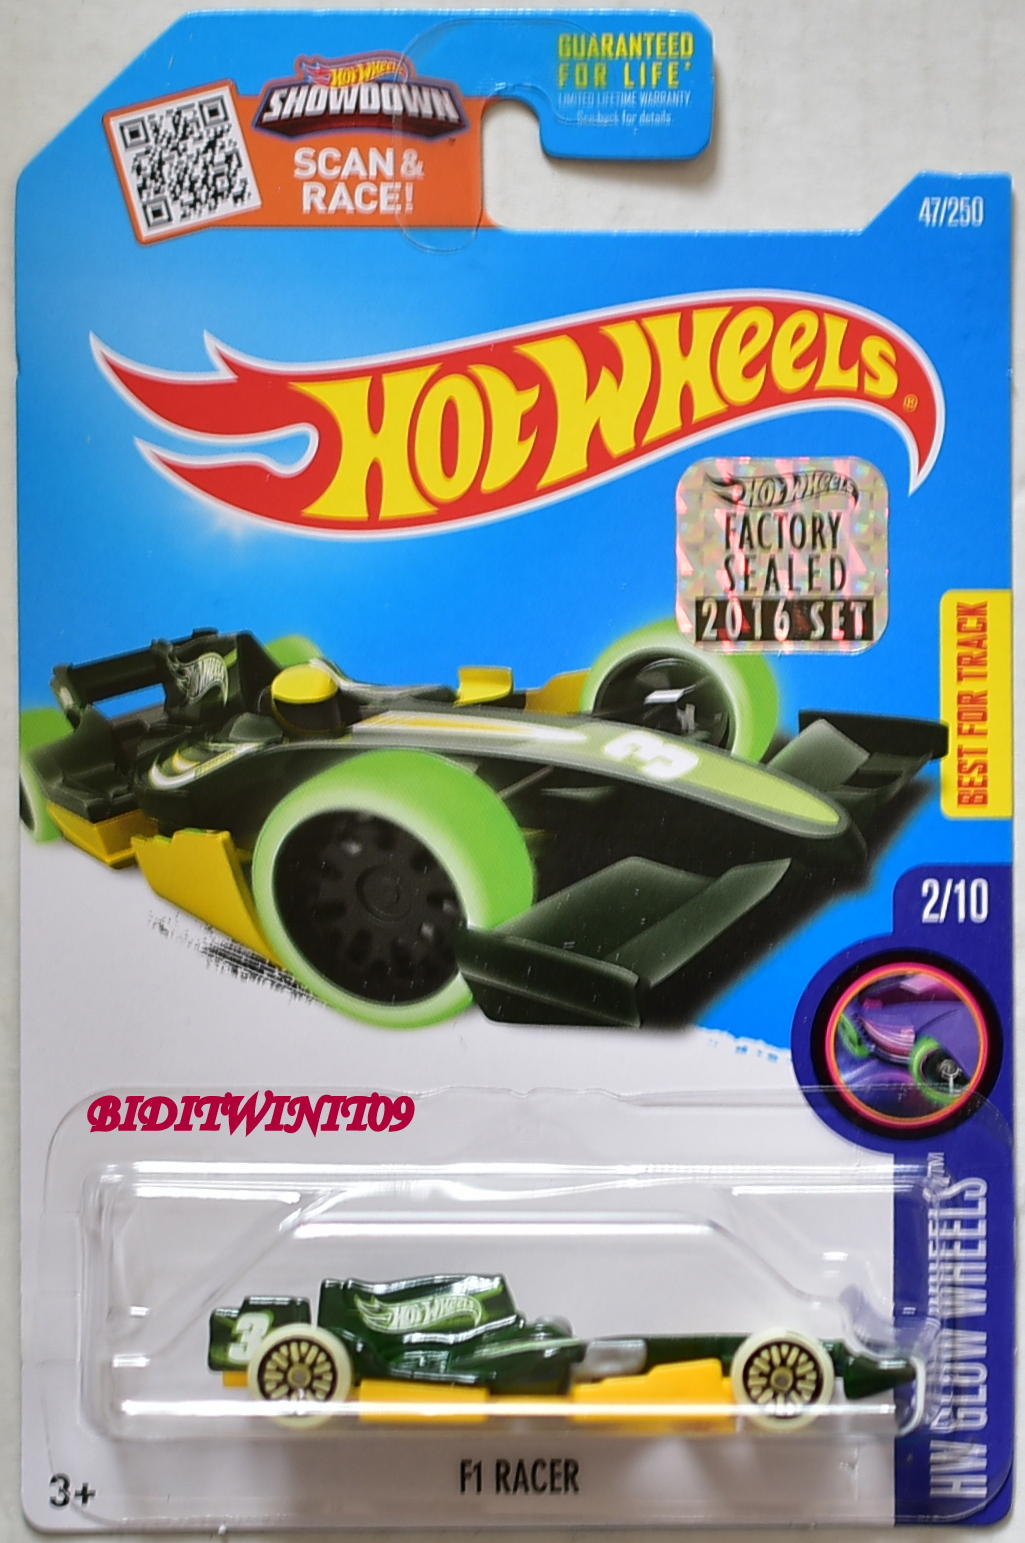 HOT WHEELS 2016 HW GLOW WHEELS F1 RACER GREEN FACTORY SEALED E+